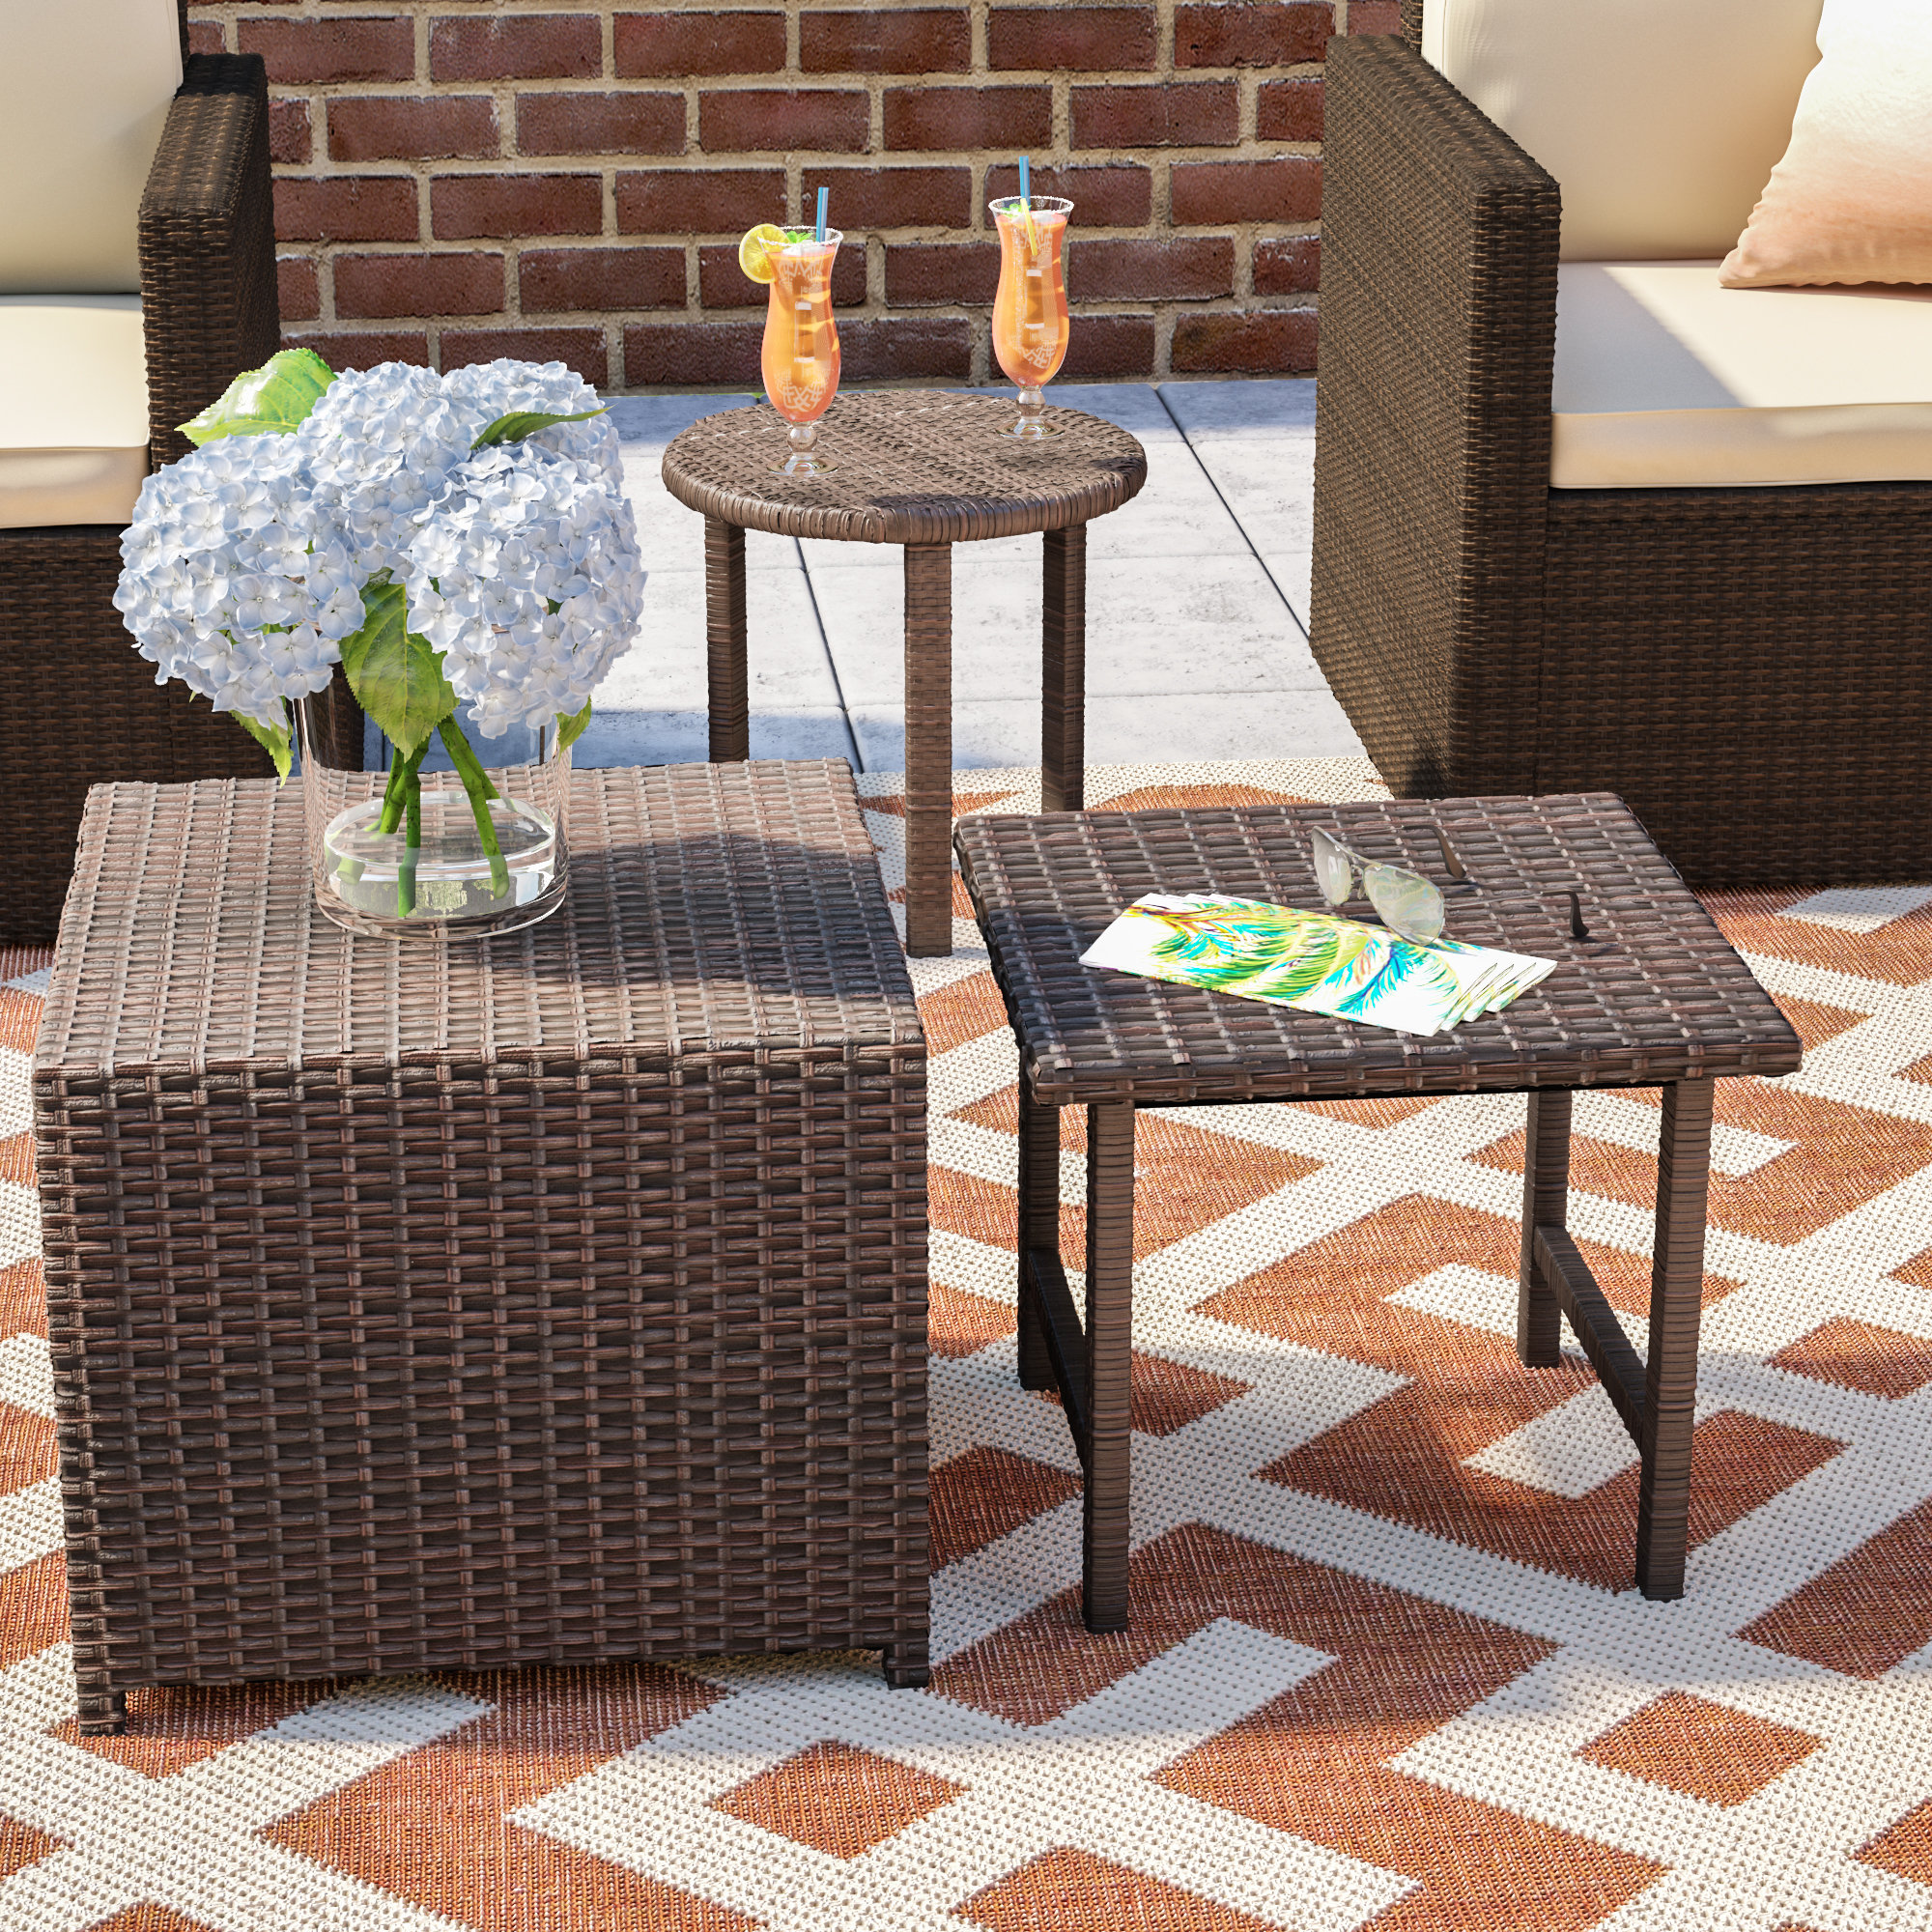 mercury row agamemnon piece wicker side table set reviews outdoor and chairs cart cherry wood dining room furniture sets metal glass end mirrored chest pier one wall art battery